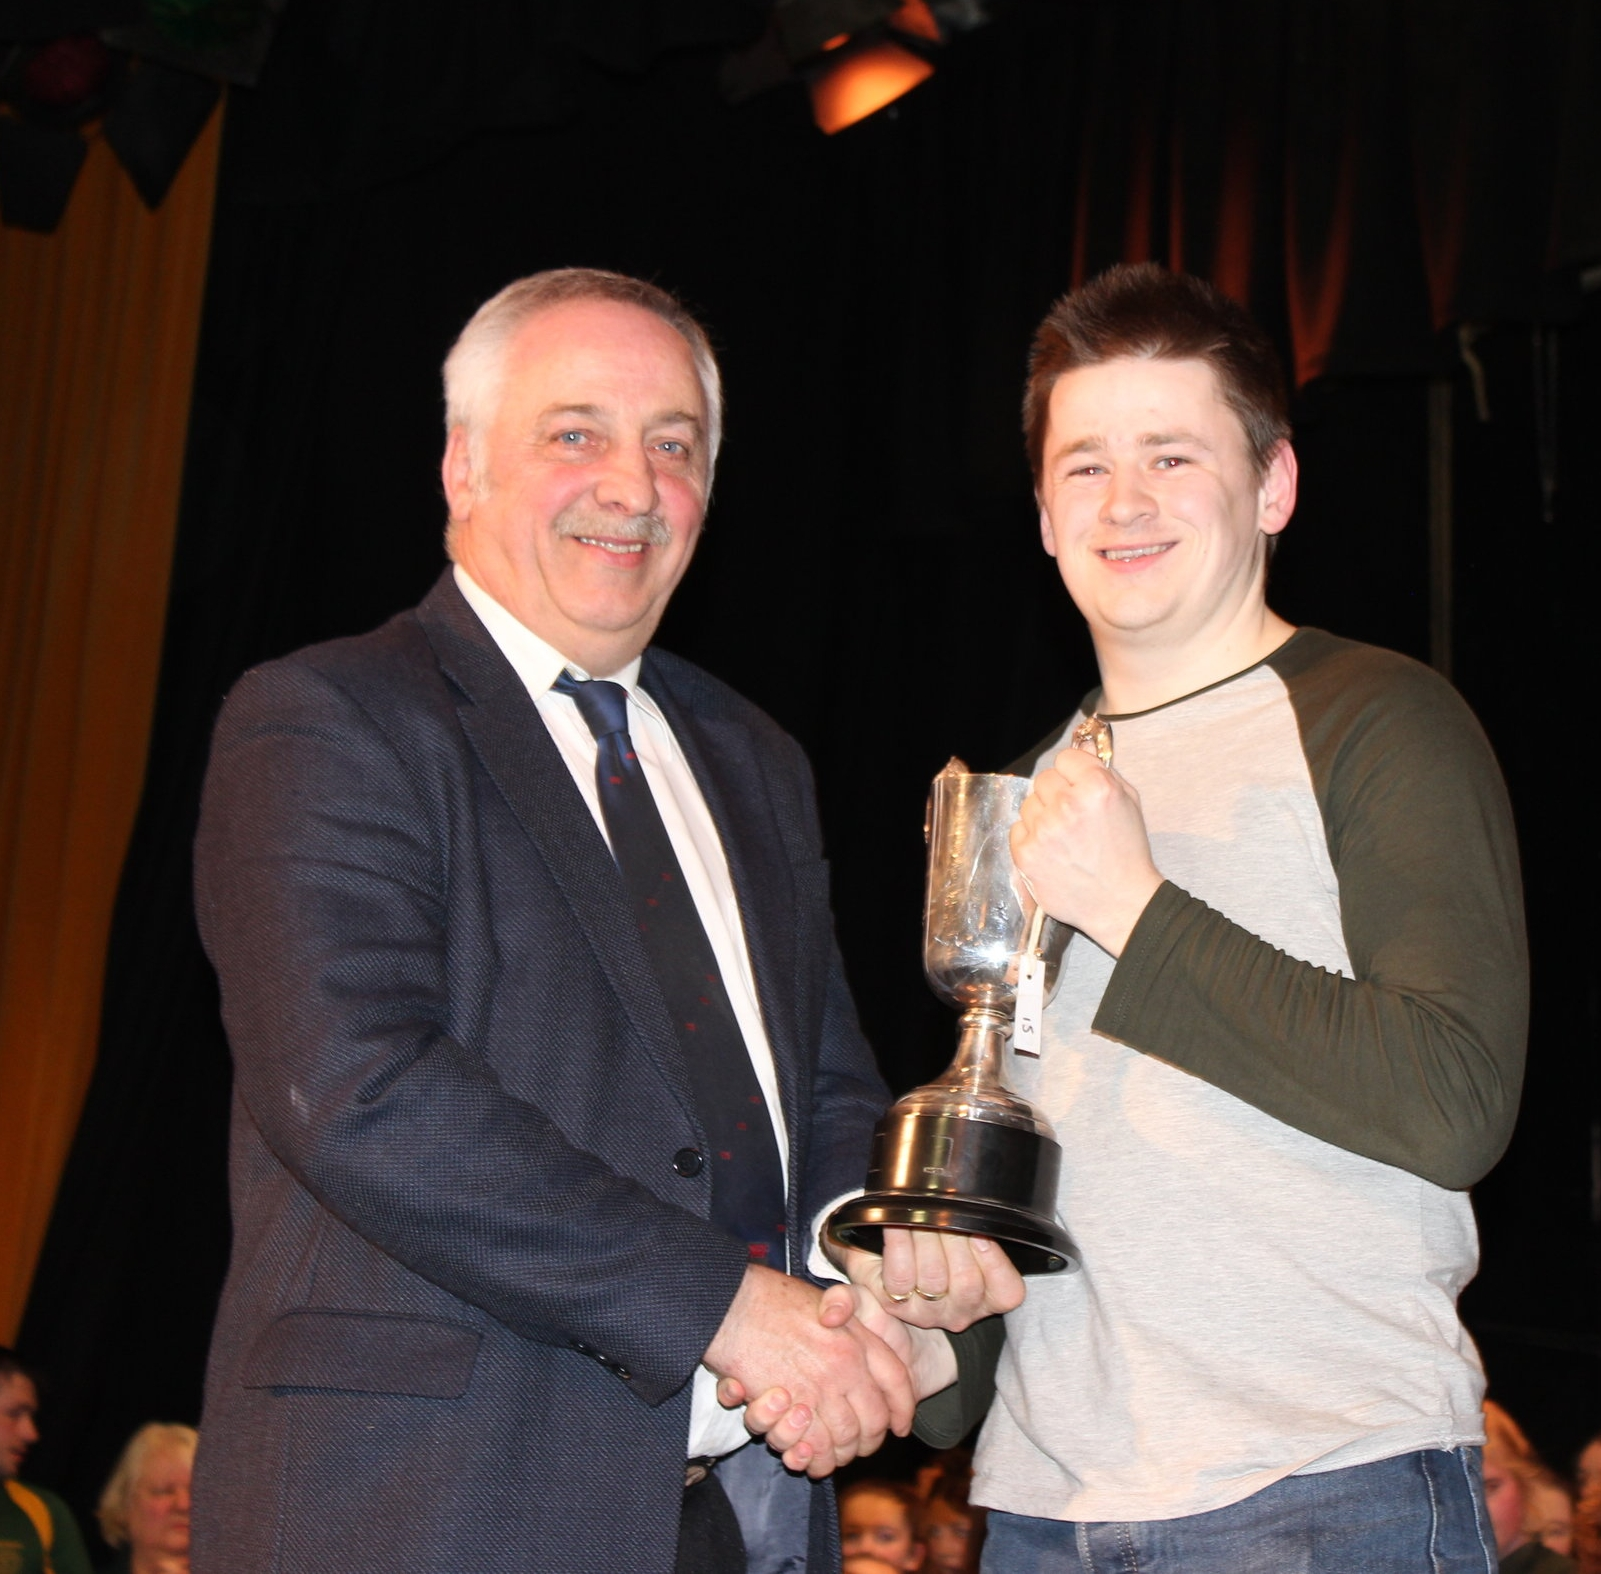 Tom Protheroe, Rhosgoch YFC being presented with the 'Estyn Meredith MBE Perpetual Trophy' for best sketch by David Powell, FUW